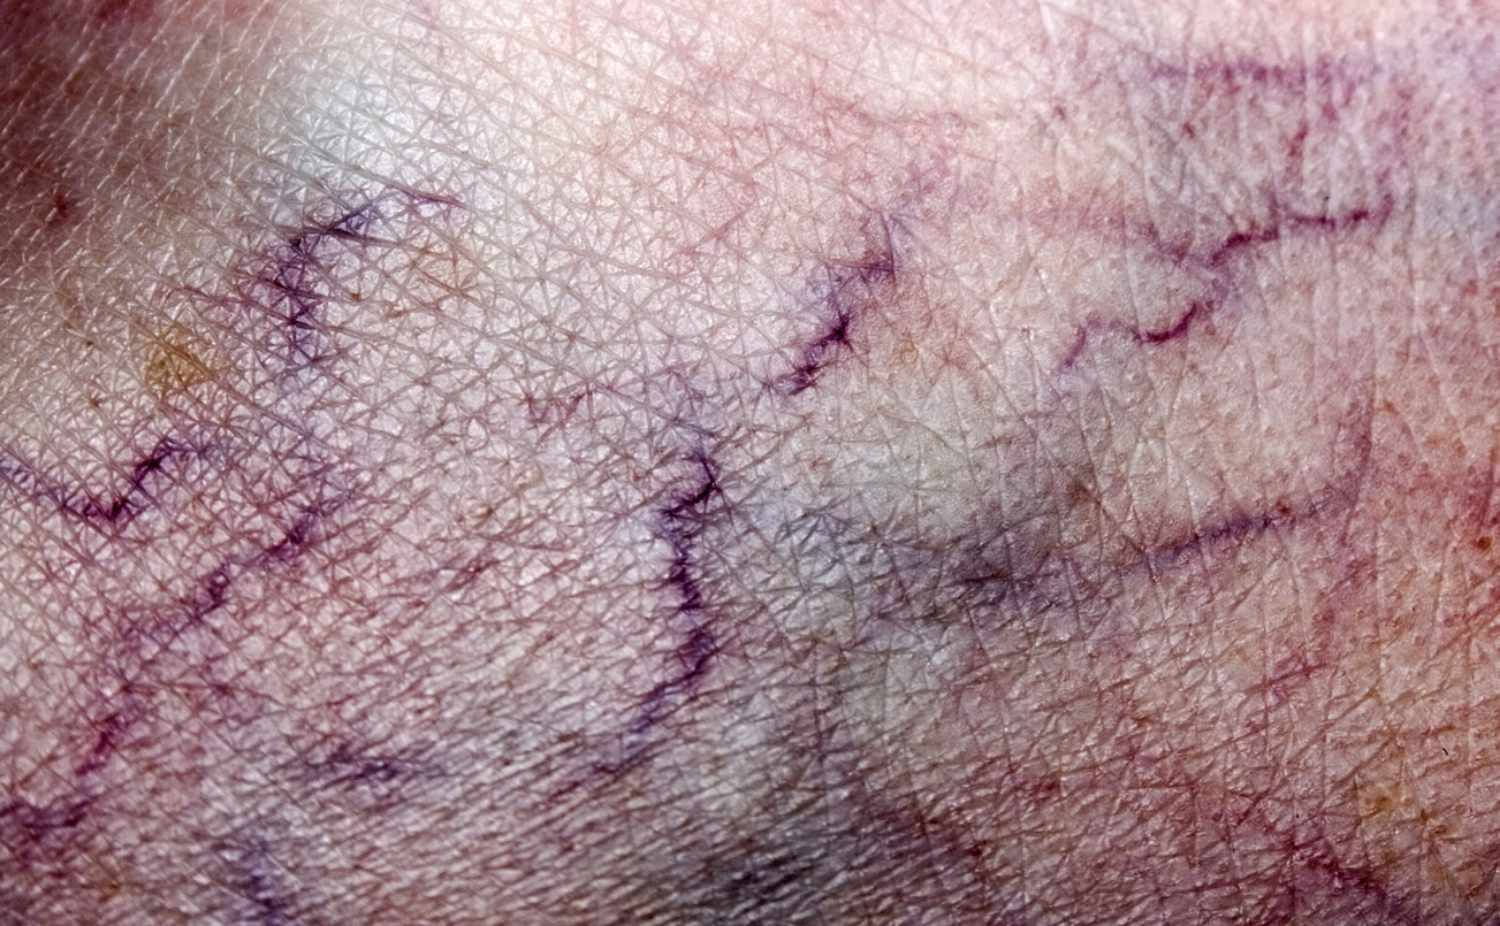 What Is a Vein? Definition, Types and Illustration